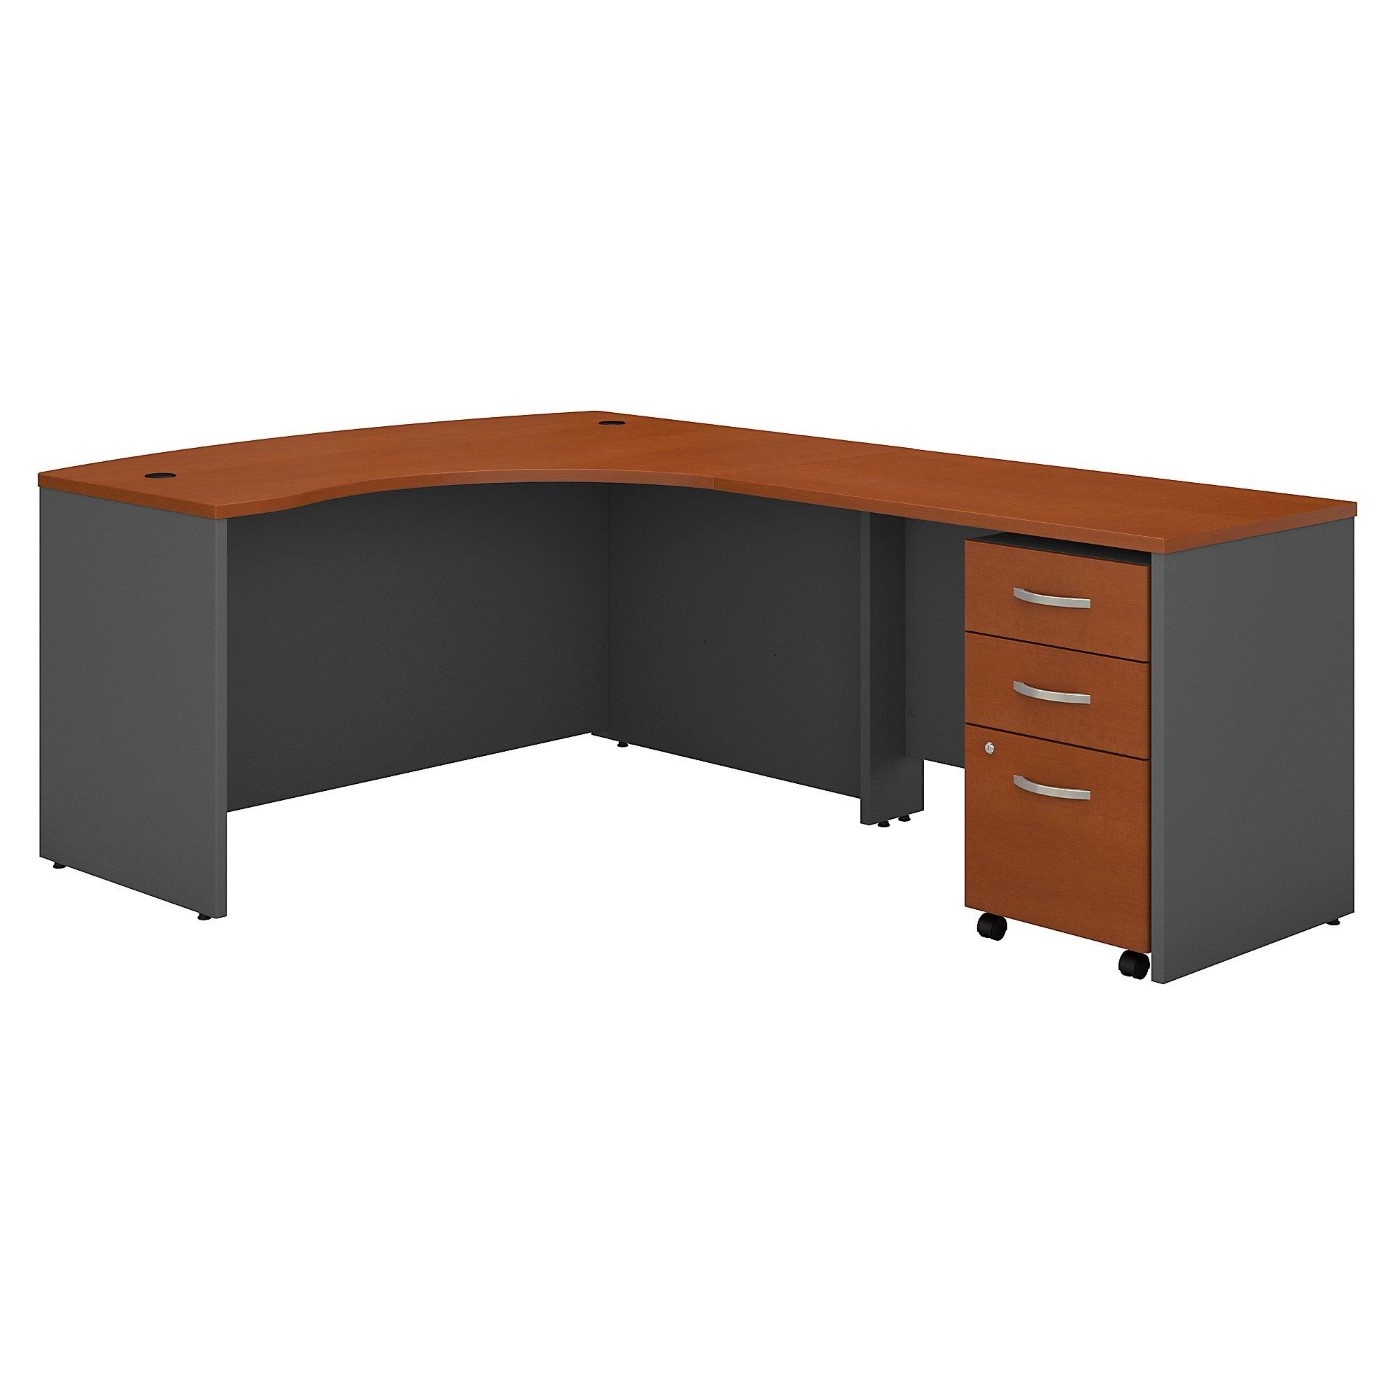 BUSH BUSINESS FURNITURE SERIES C LEFT HANDED L SHAPED DESK WITH MOBILE FILE CABINET. FREE SHIPPING  VIDEO BELOW.  SALE DEDUCT 10% MORE ENTER '10percent' IN COUPON CODE BOX WHILE CHECKING OUT.